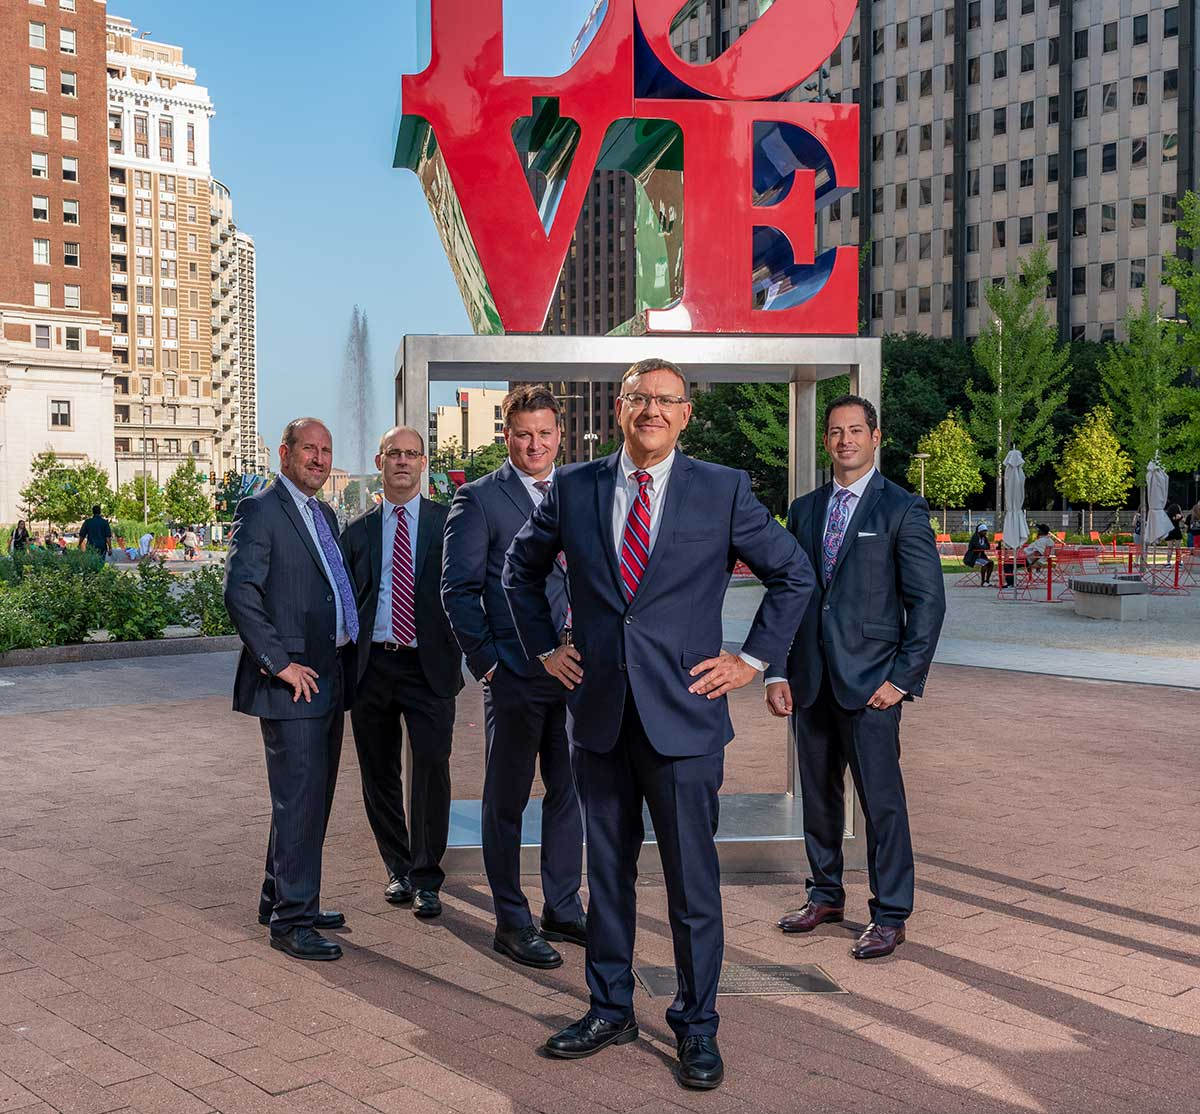 Rand Spear and Spear Greenfield Personal Injury Attorneys in front of Philly Love Statue